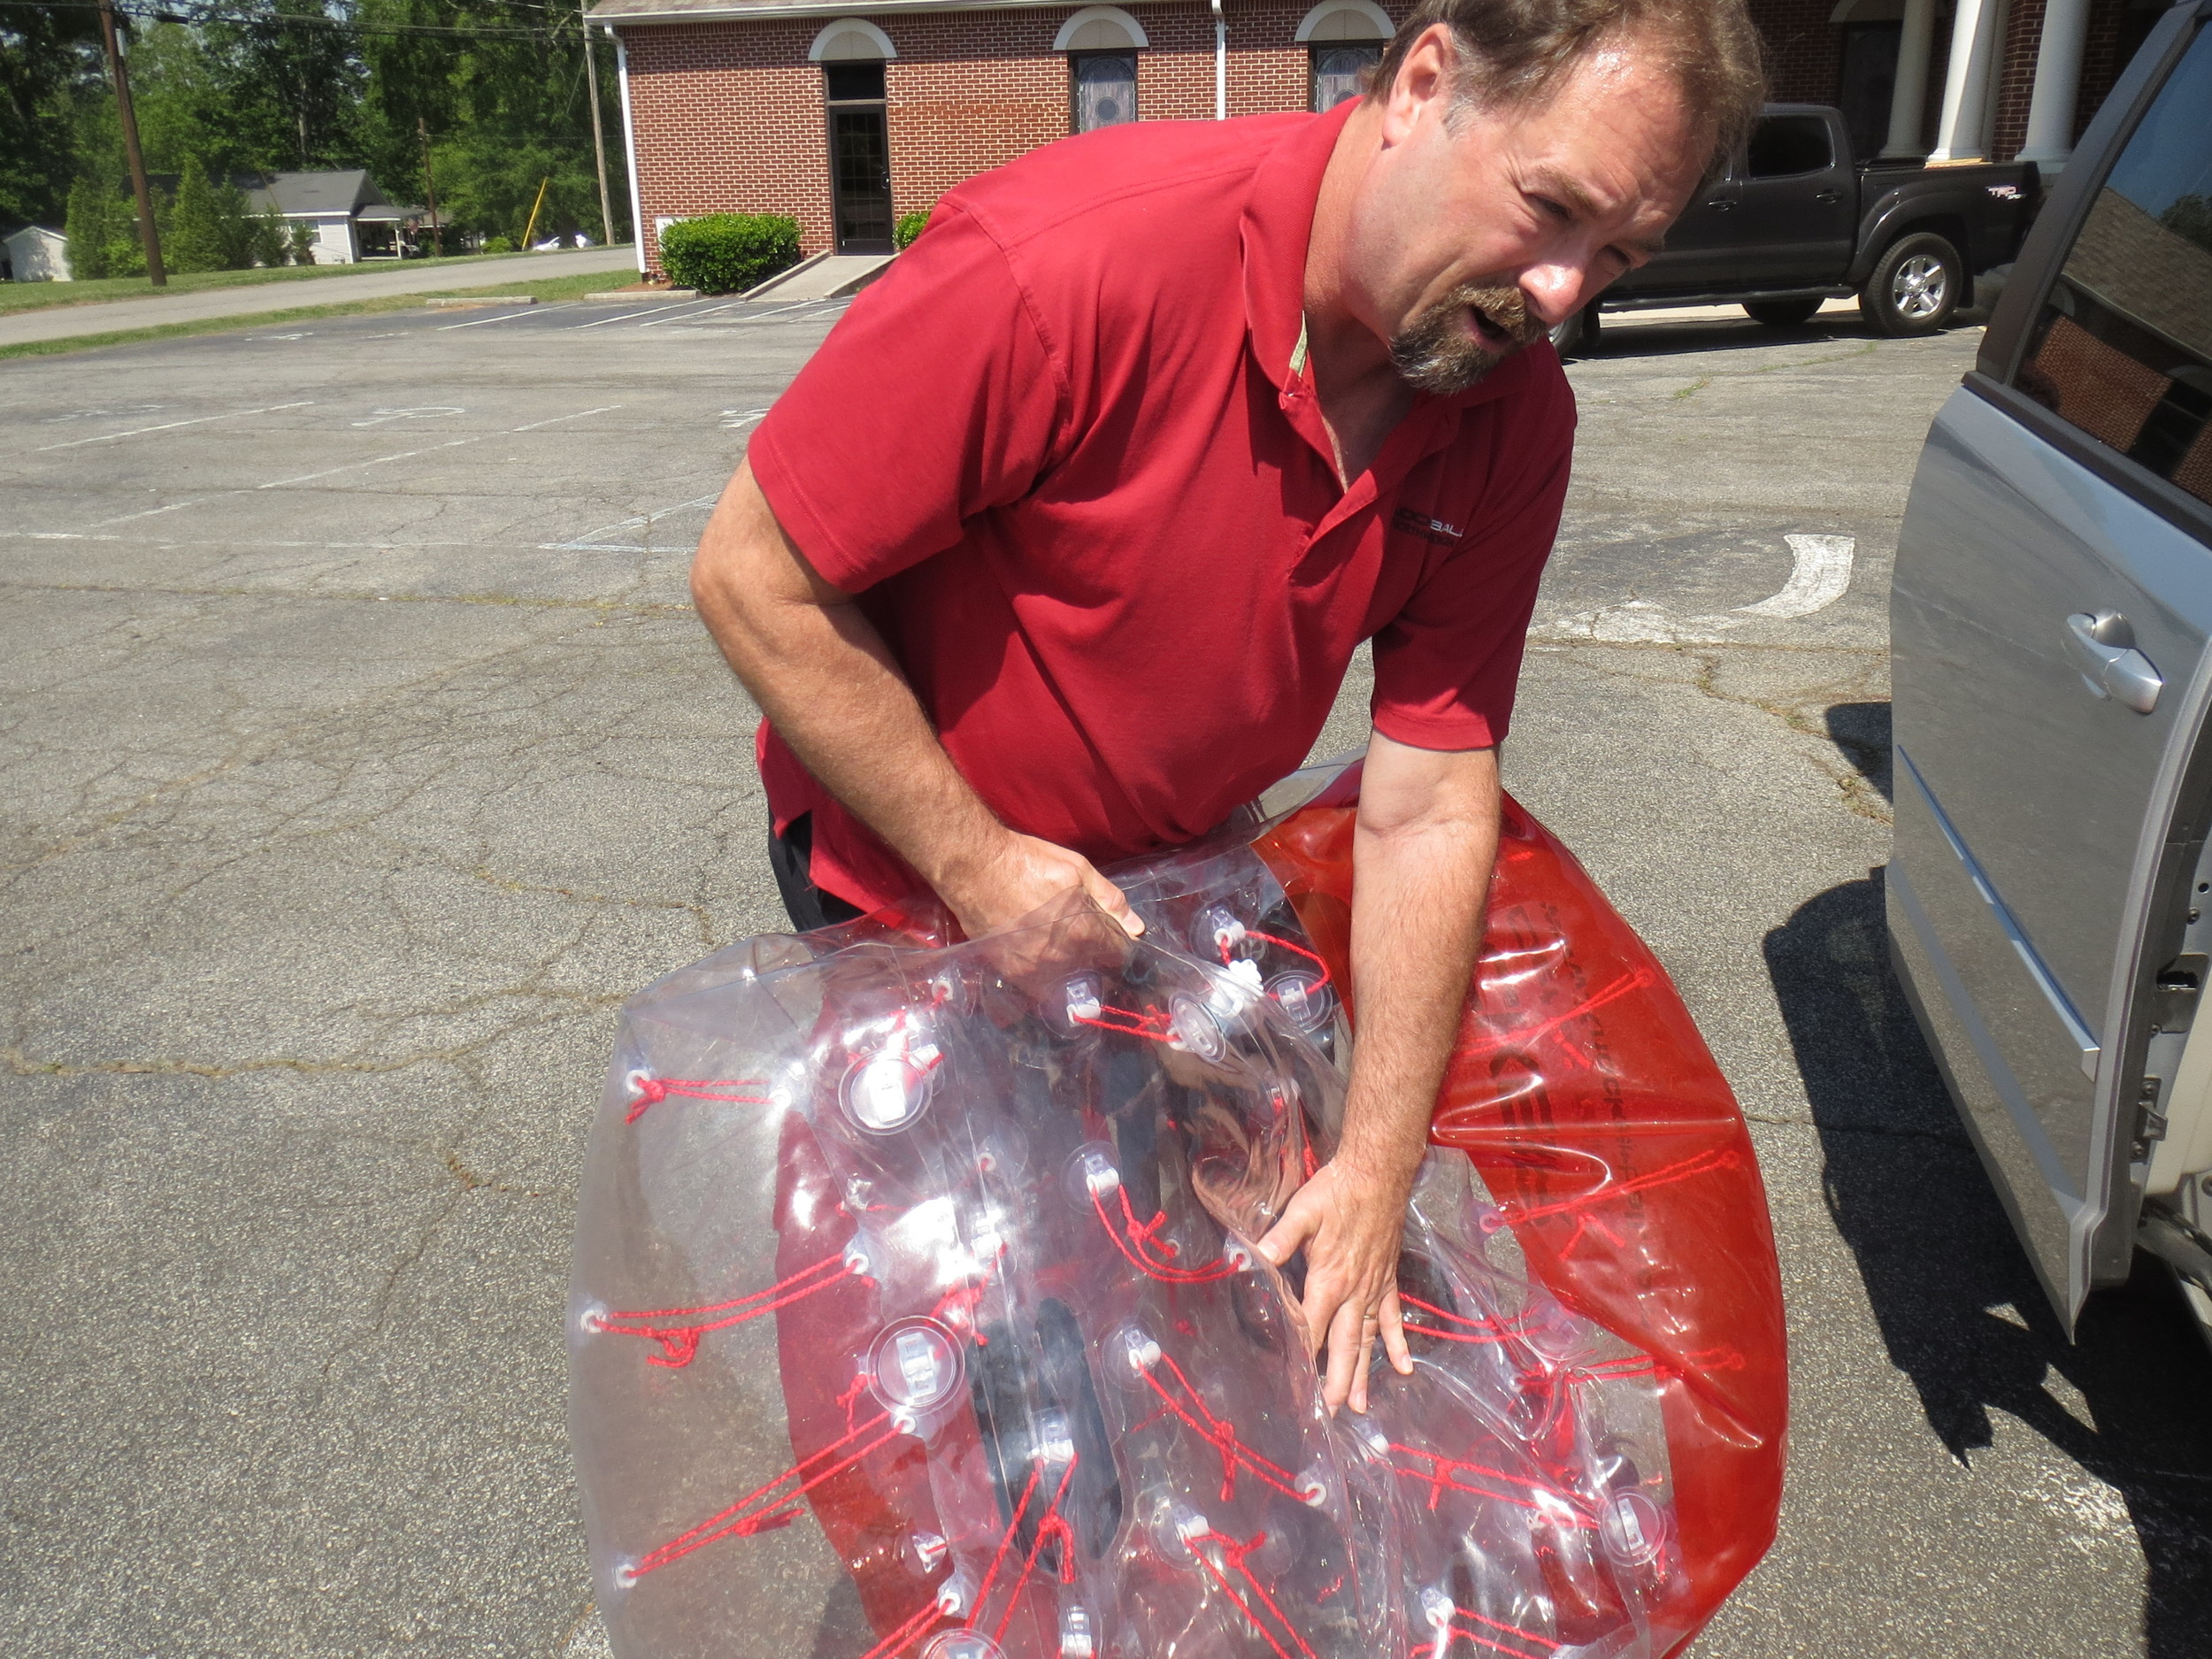 What's the appeal of KnockerBalls? Craig Bradley says it's a  fun — and safe — way to get out some playful aggression.